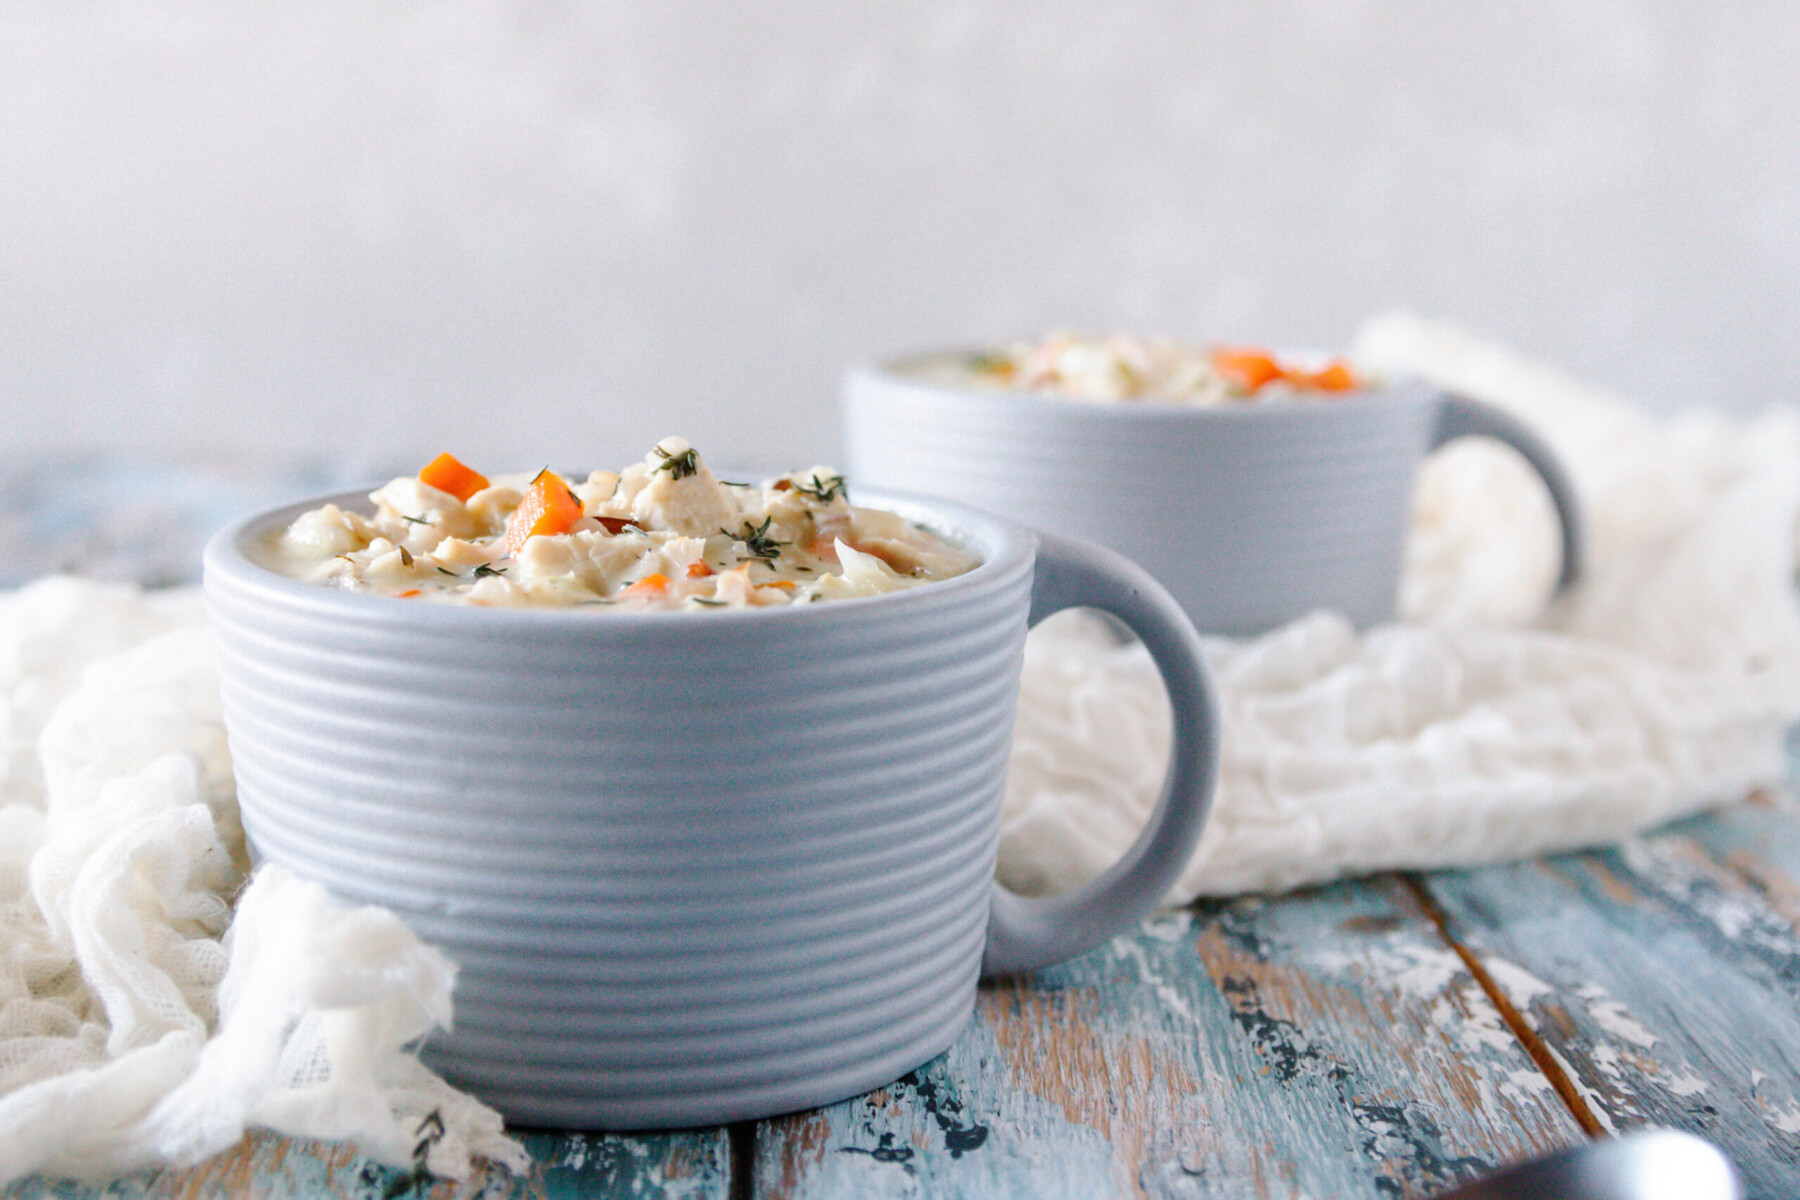 horizontal image showing two bowls of soup on a blue mottled tabletop with a grey background